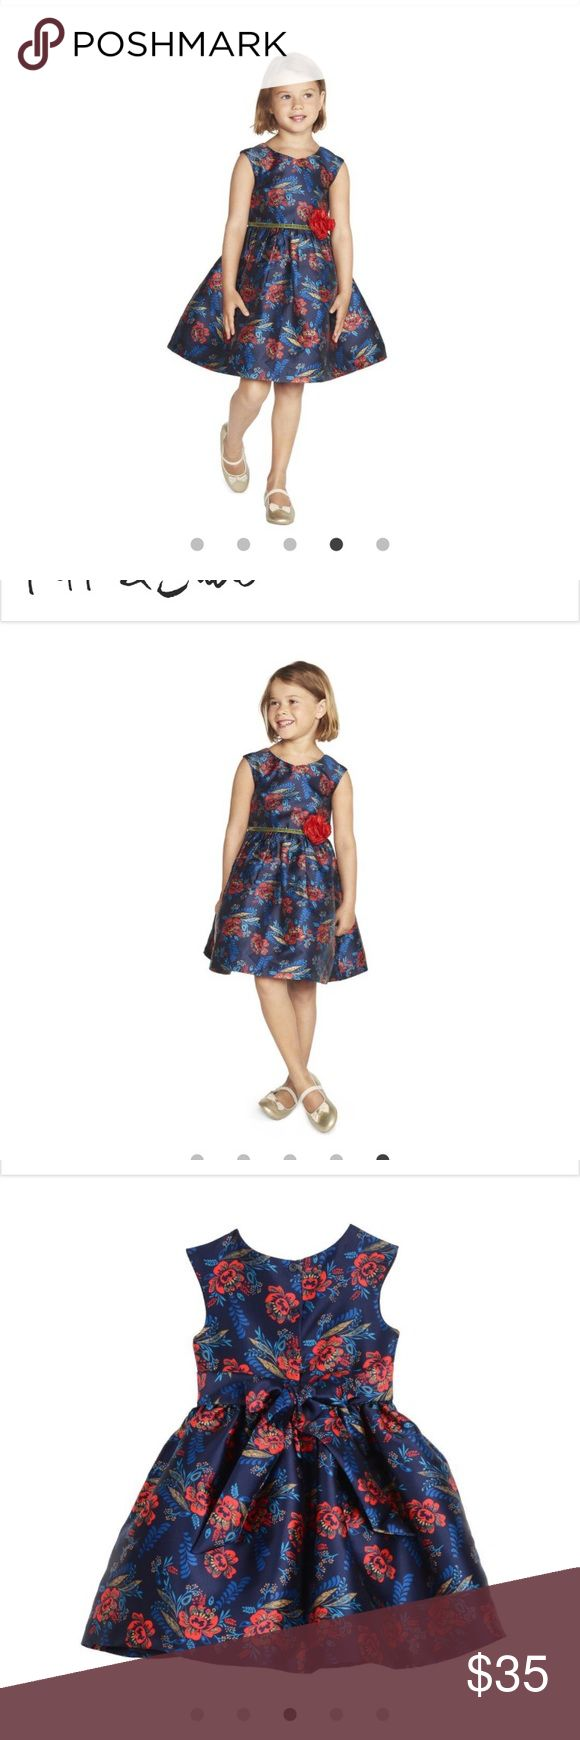 Pippa and Julie Toddler Dress Used once for pictures like new except with our tags-This faille dress features striking shades of red and blue in a crisp floral pattern, and has a fitted cap sleeve bodice with slightly flared skirt. A velvet ribbon trims the waist for rich texture, finished with a bright red fabric rose at the waist for the finishing touch. Pippa & Julie Dresses Formal